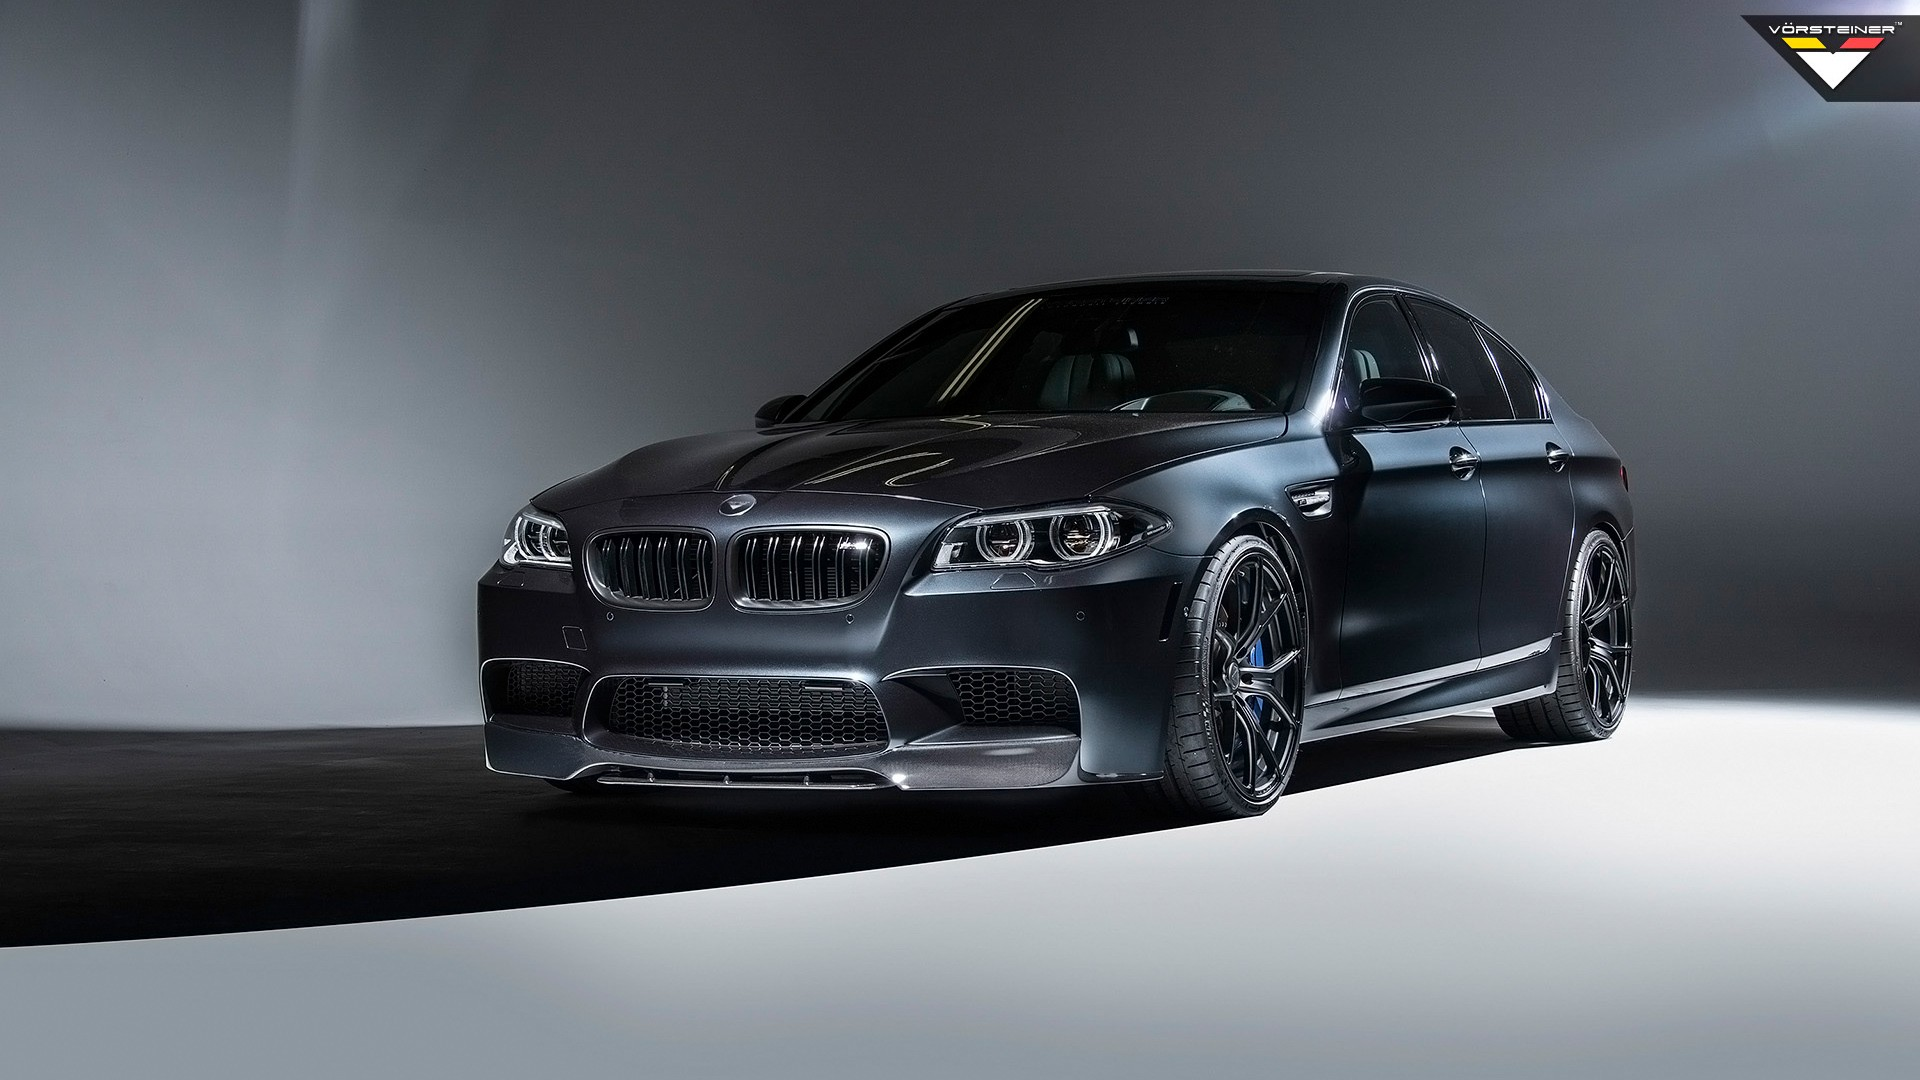 2014 Vorsteiner Bmw F10 M5 Wallpaper Hd Car Wallpapers